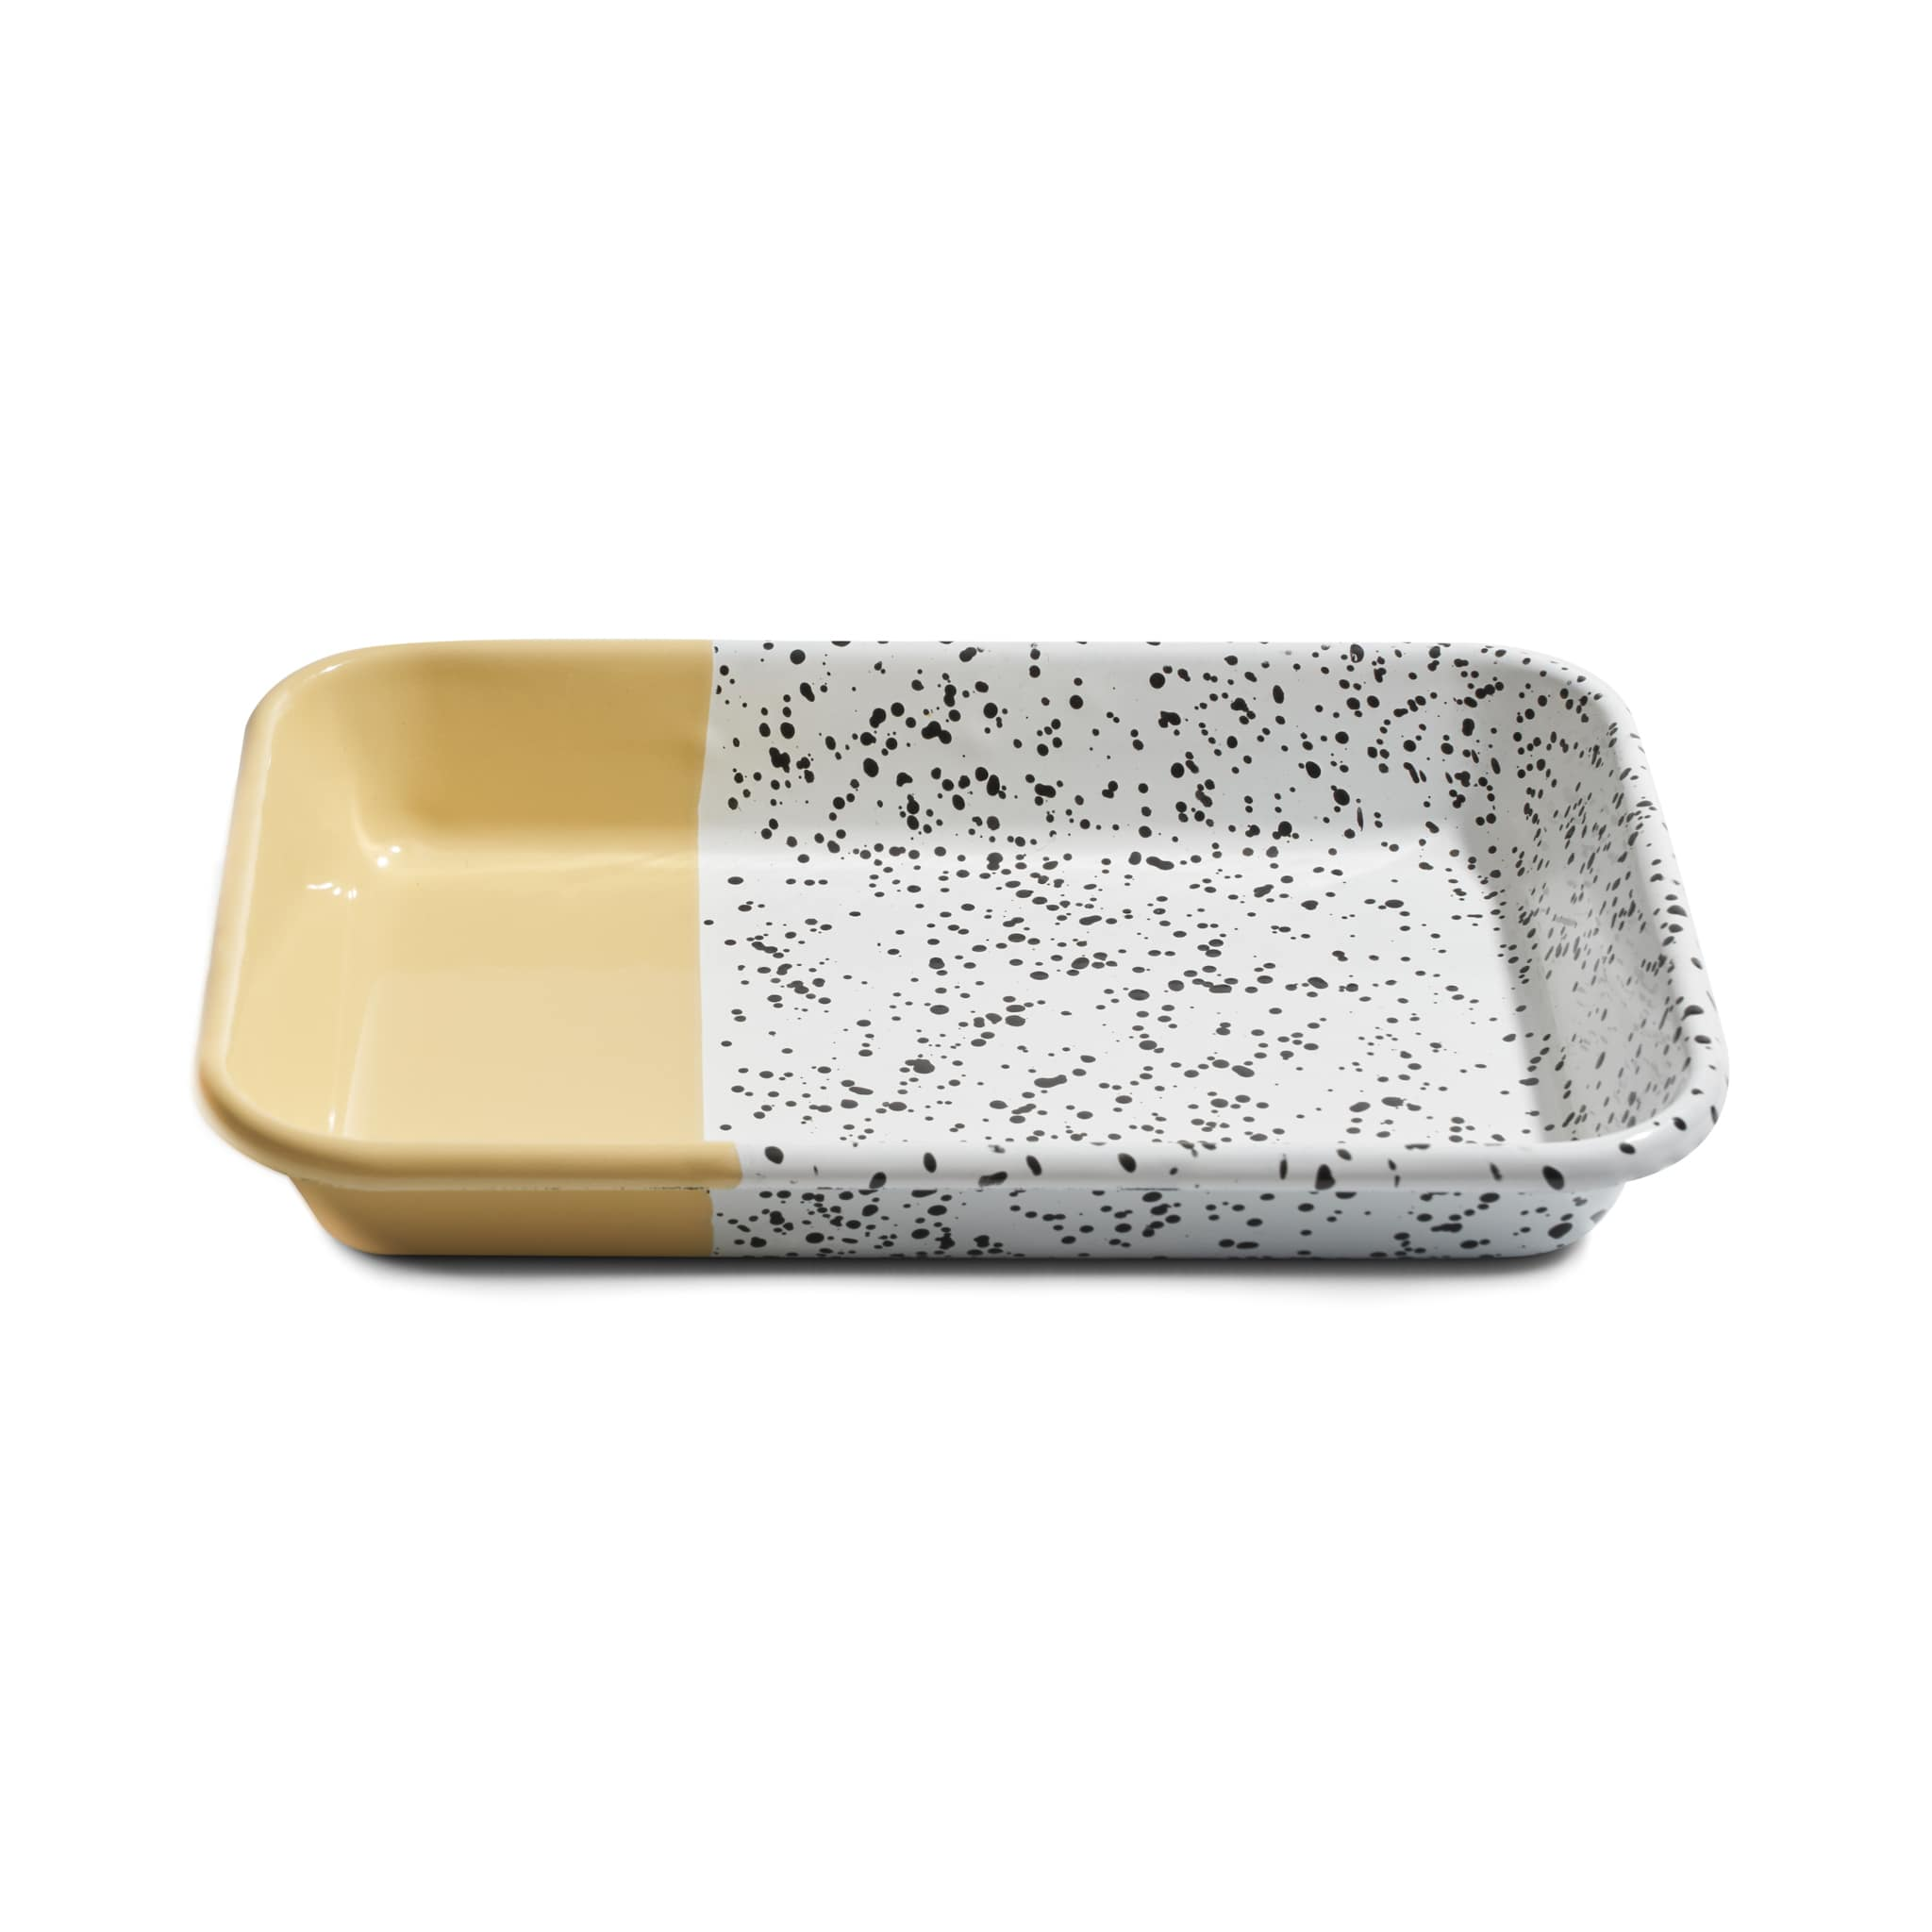 Kapka Colour Pop Enamel Roasting and Serving Dish Yellow 26cm x 18cm Turkish Oven to Tableware